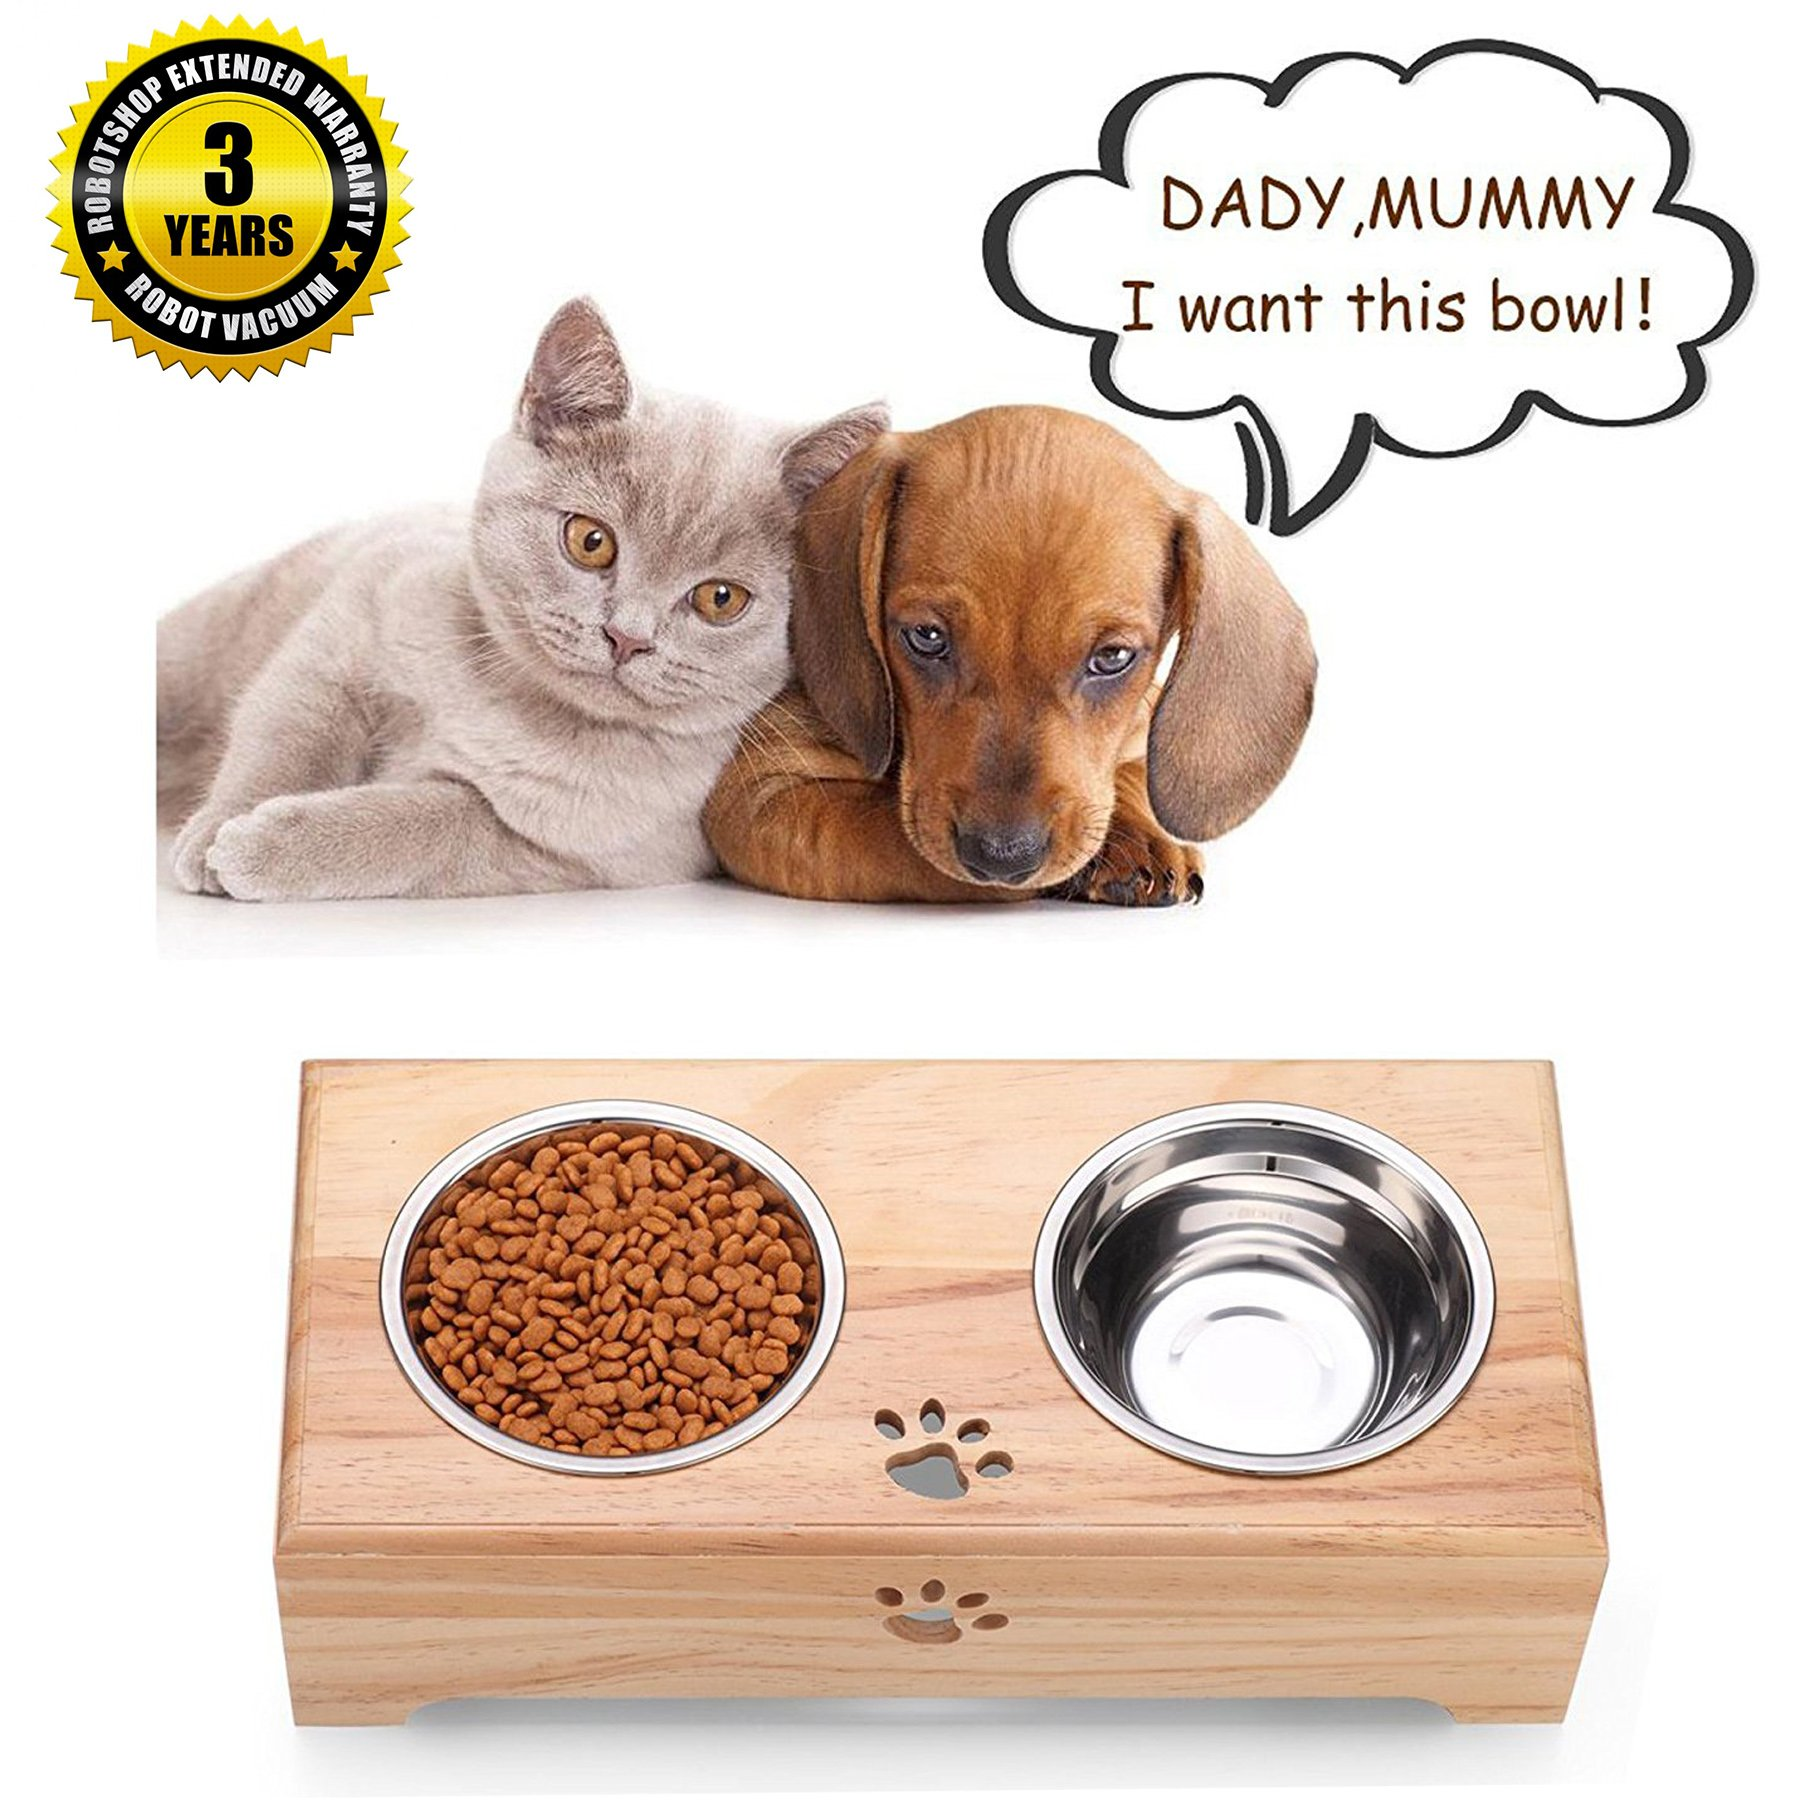 Gelinzon Stainless Steels Pet Dog Cat Food Water Feeder With Double Bowls Fixed Wooden Table